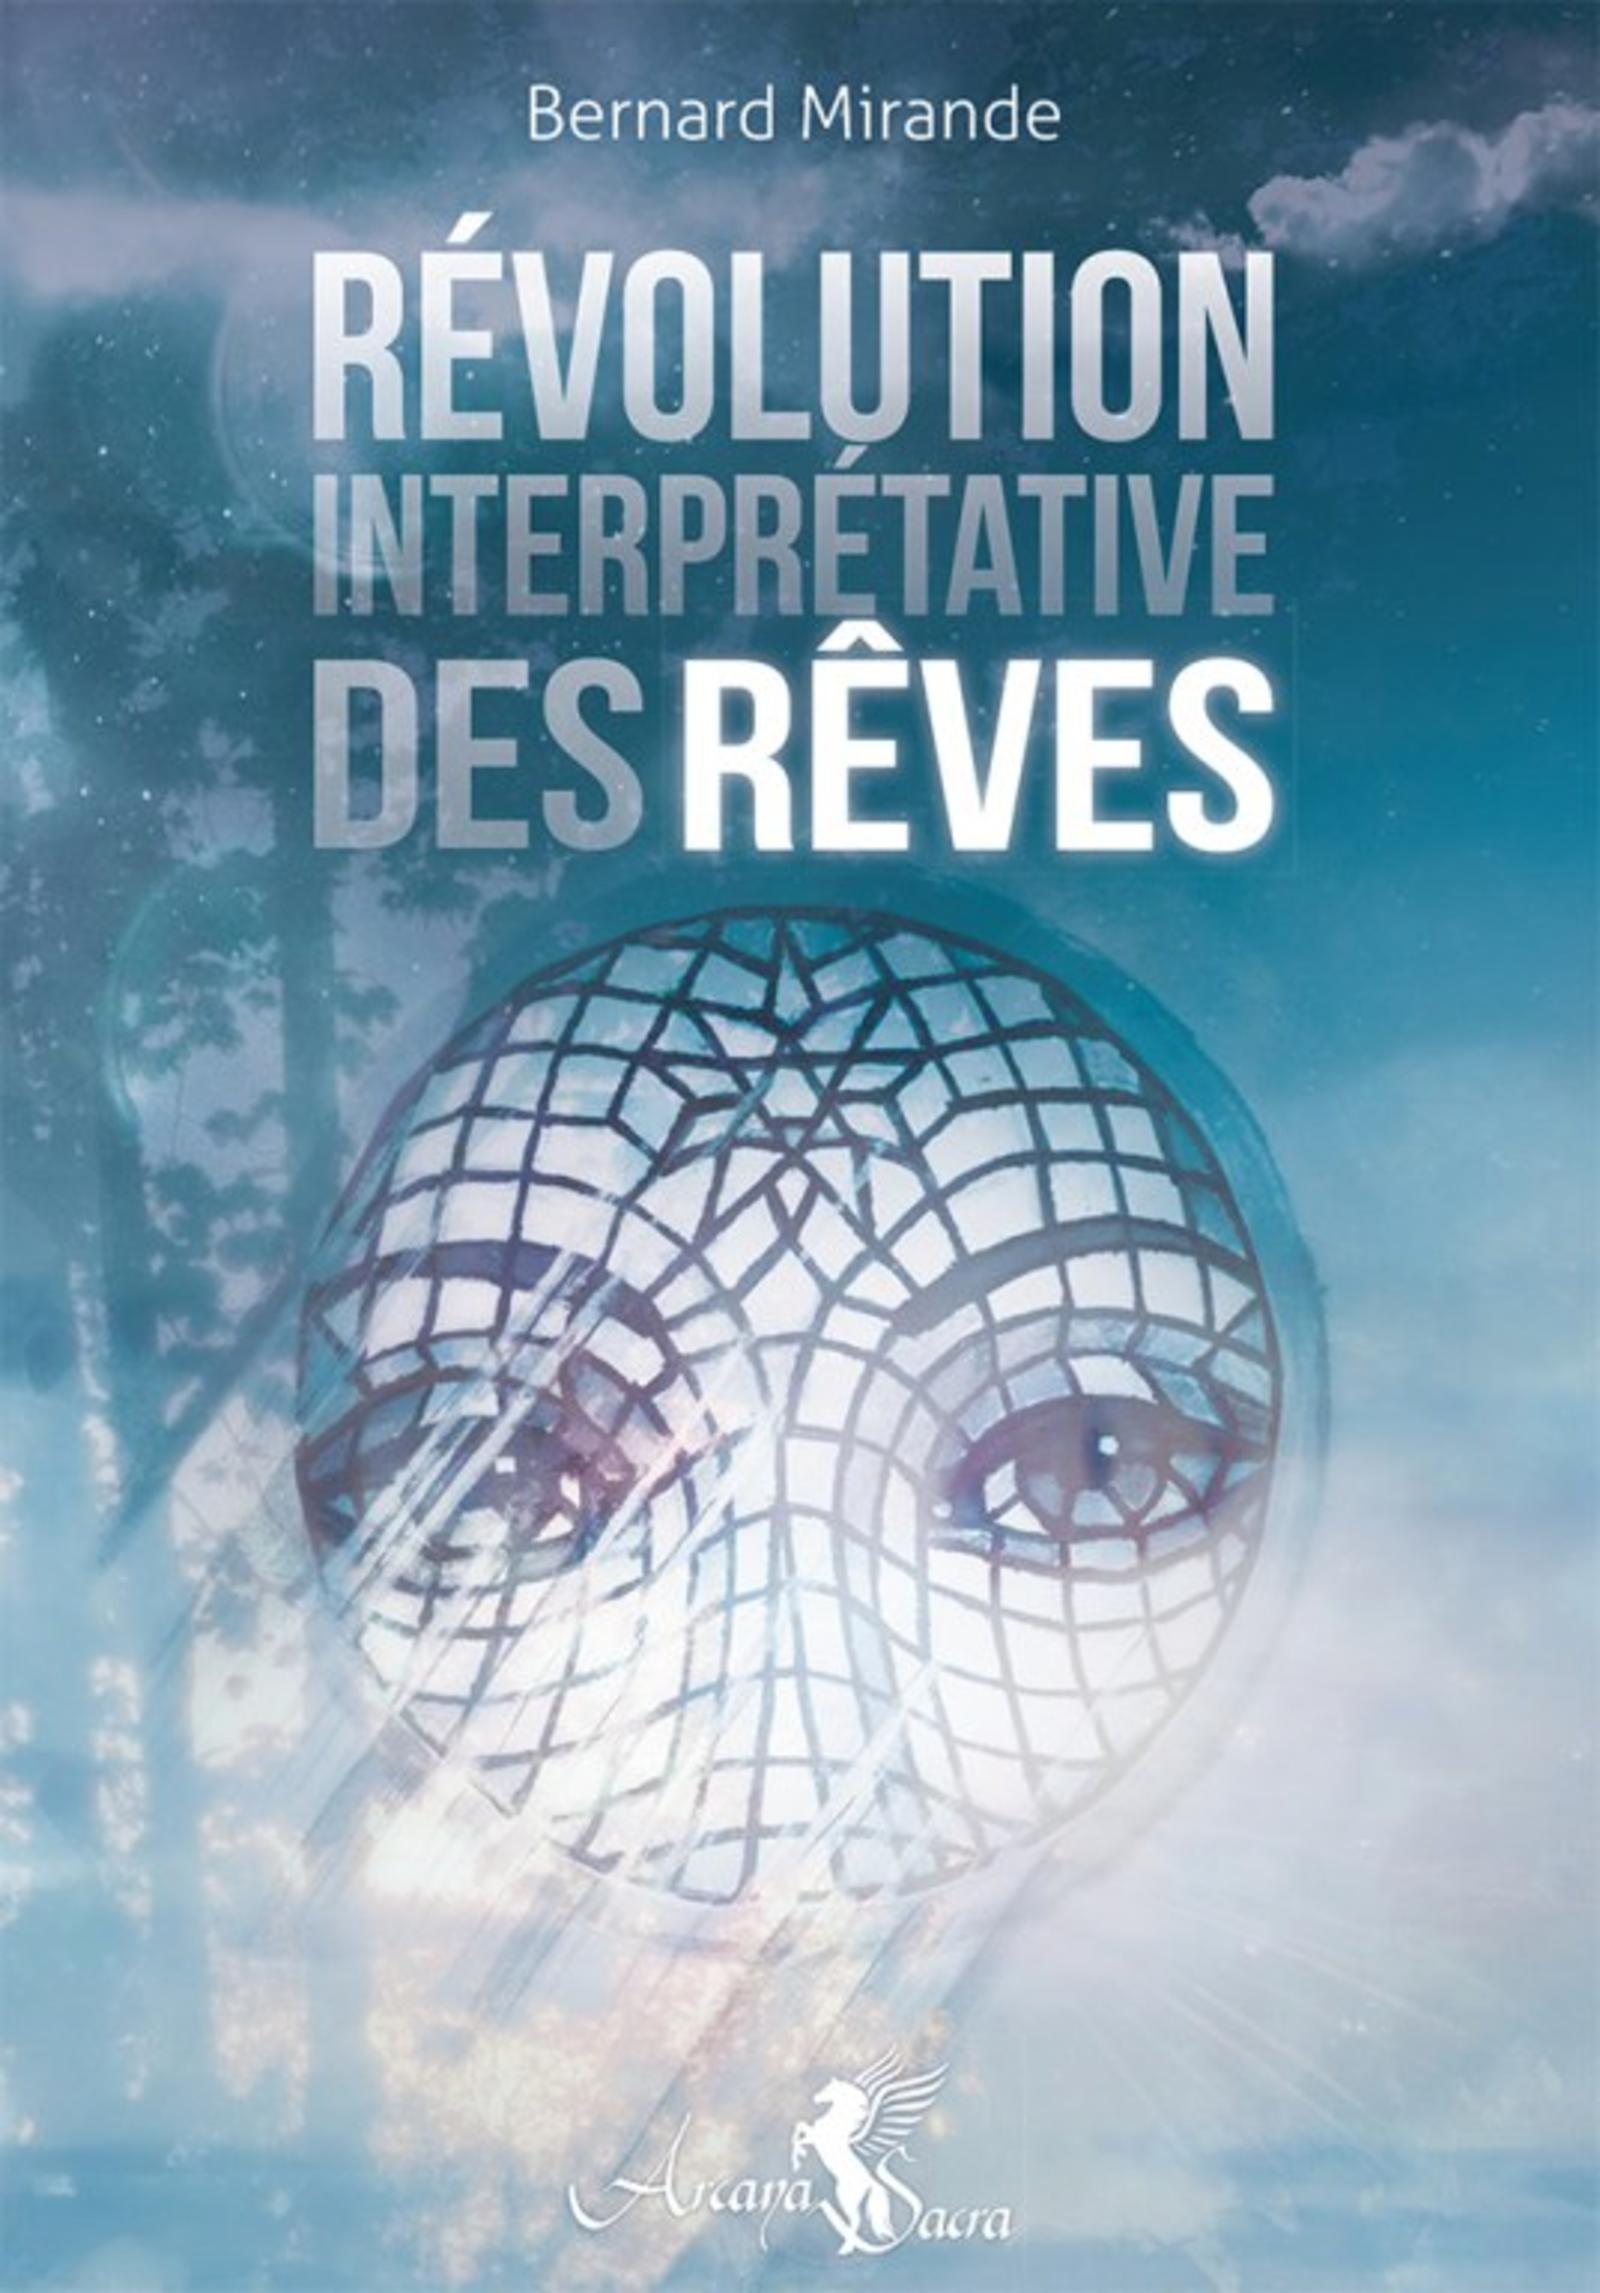 REVOLUTION INTERPRETATIVE DES REVES